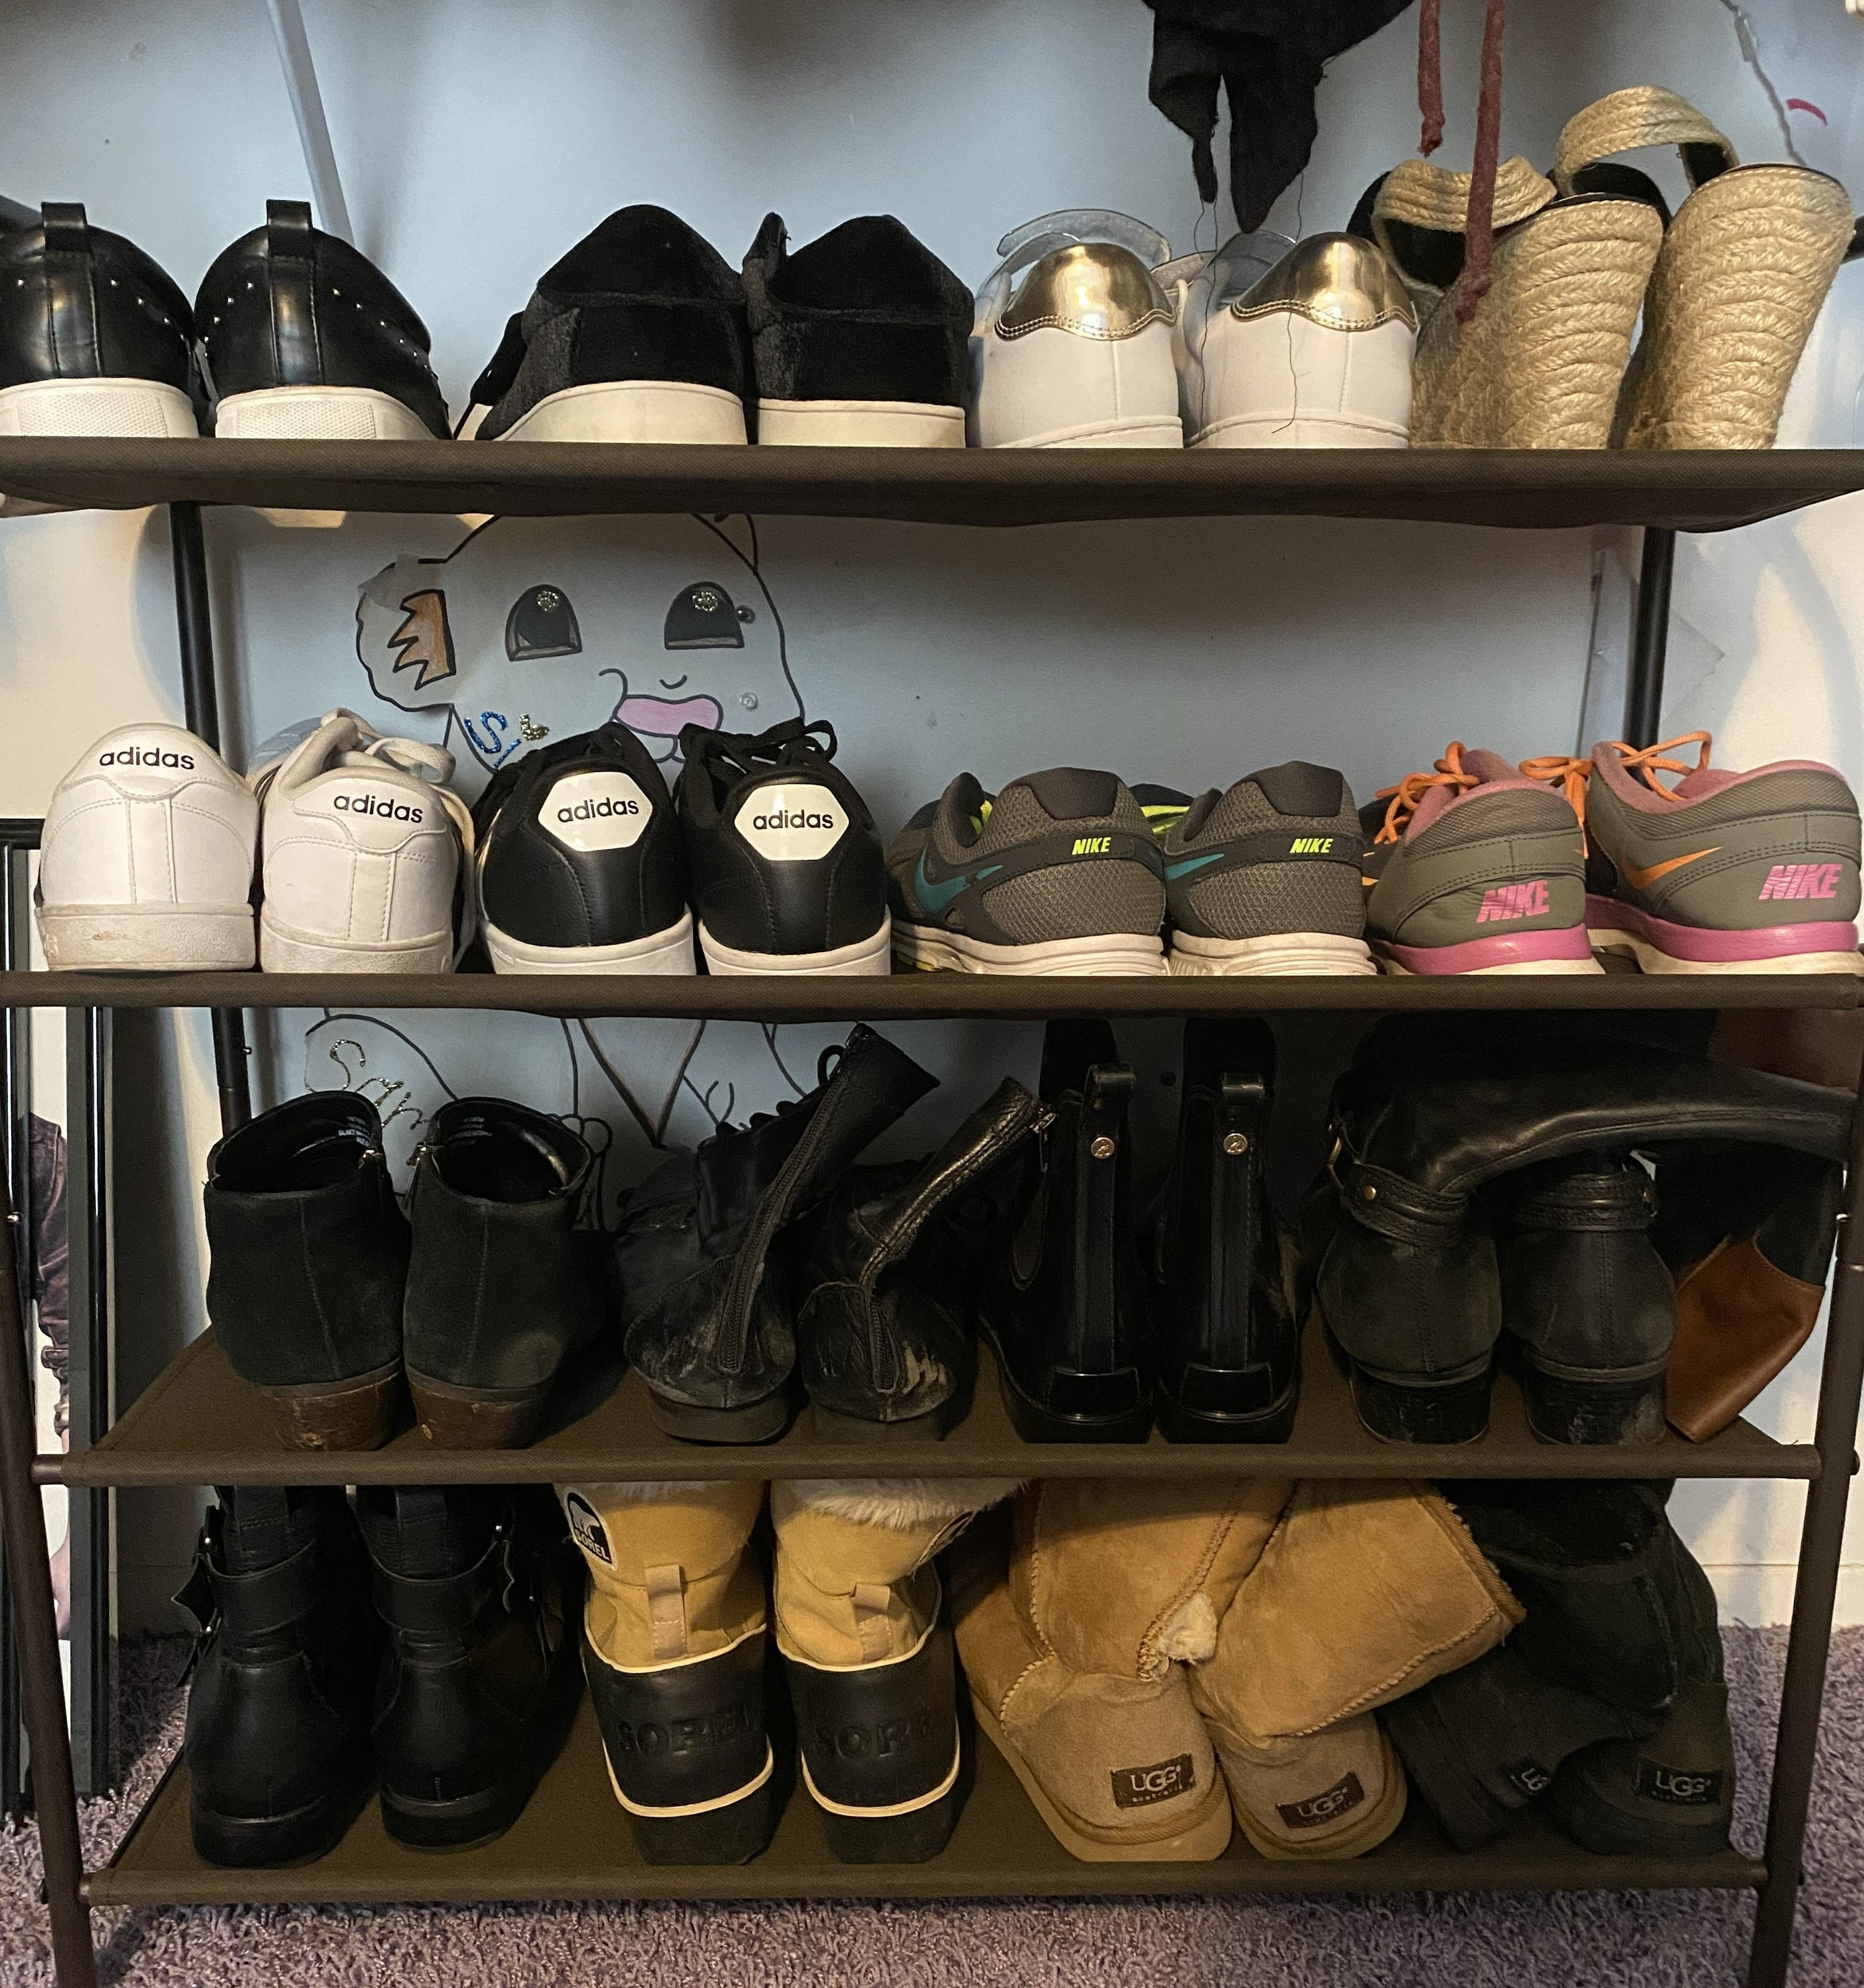 The shoe rack holding shoes